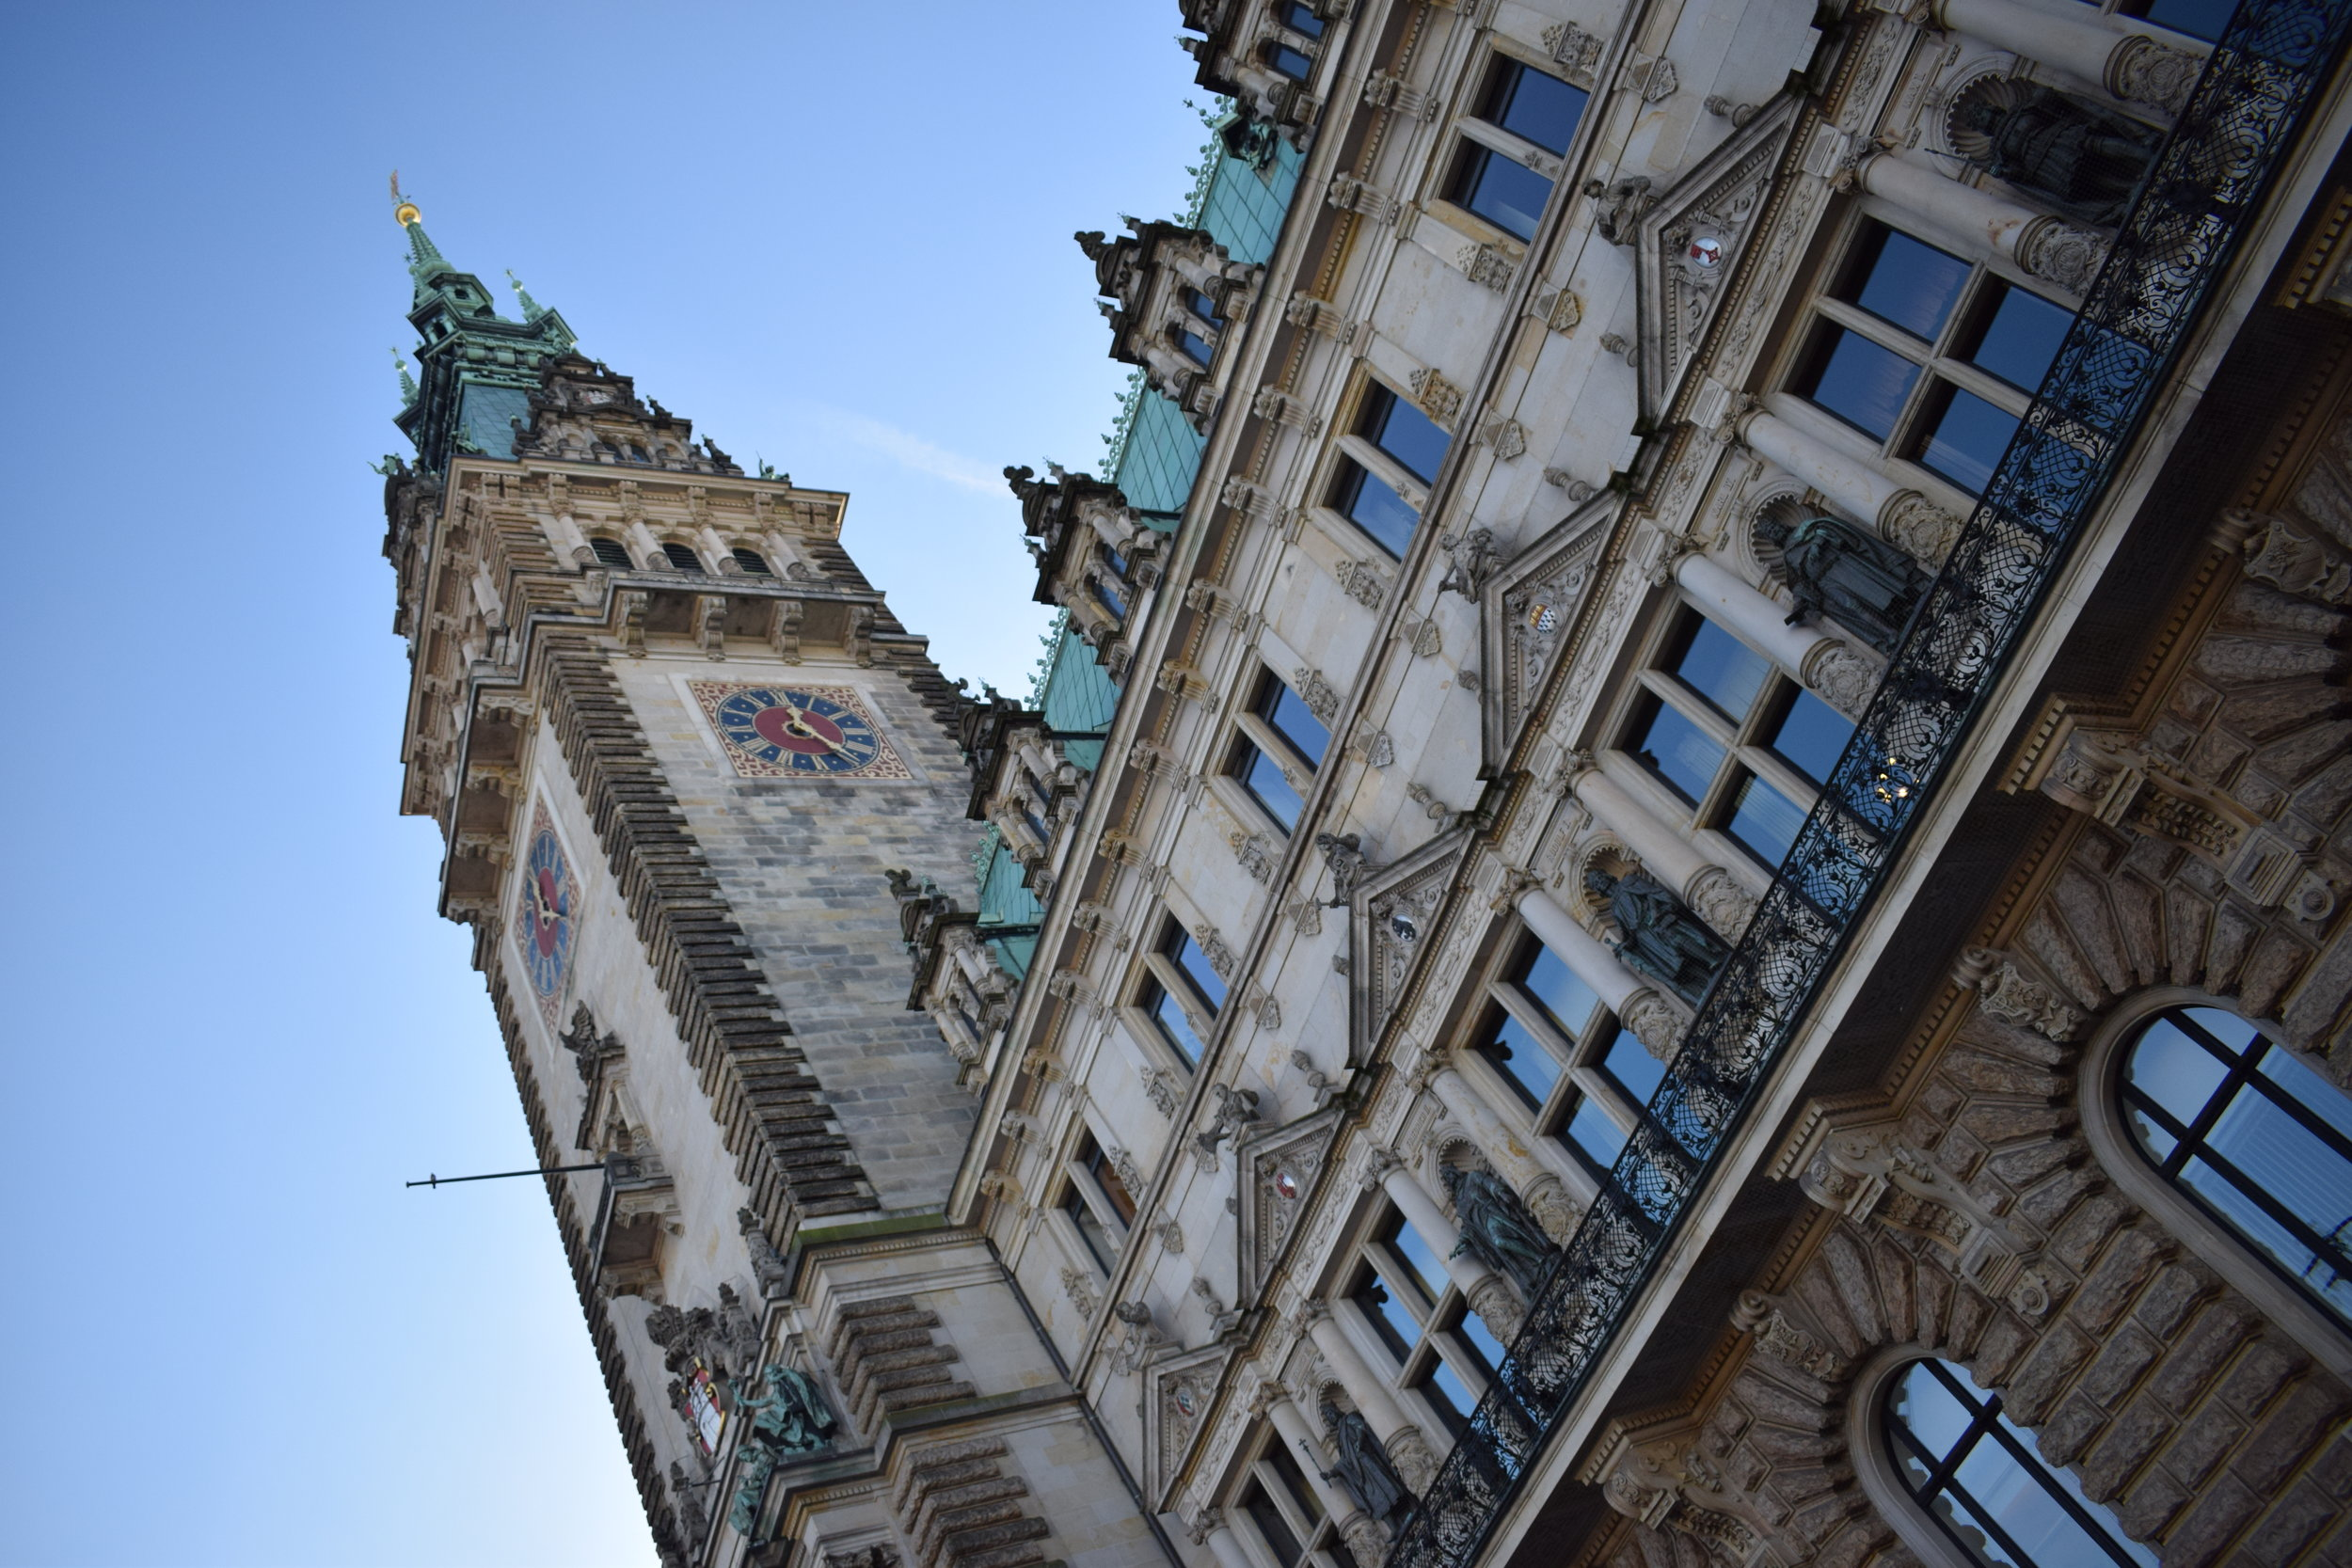 The stunning Rathaus provides the backdrop to one of Hamburg's most popular Christmas markets.